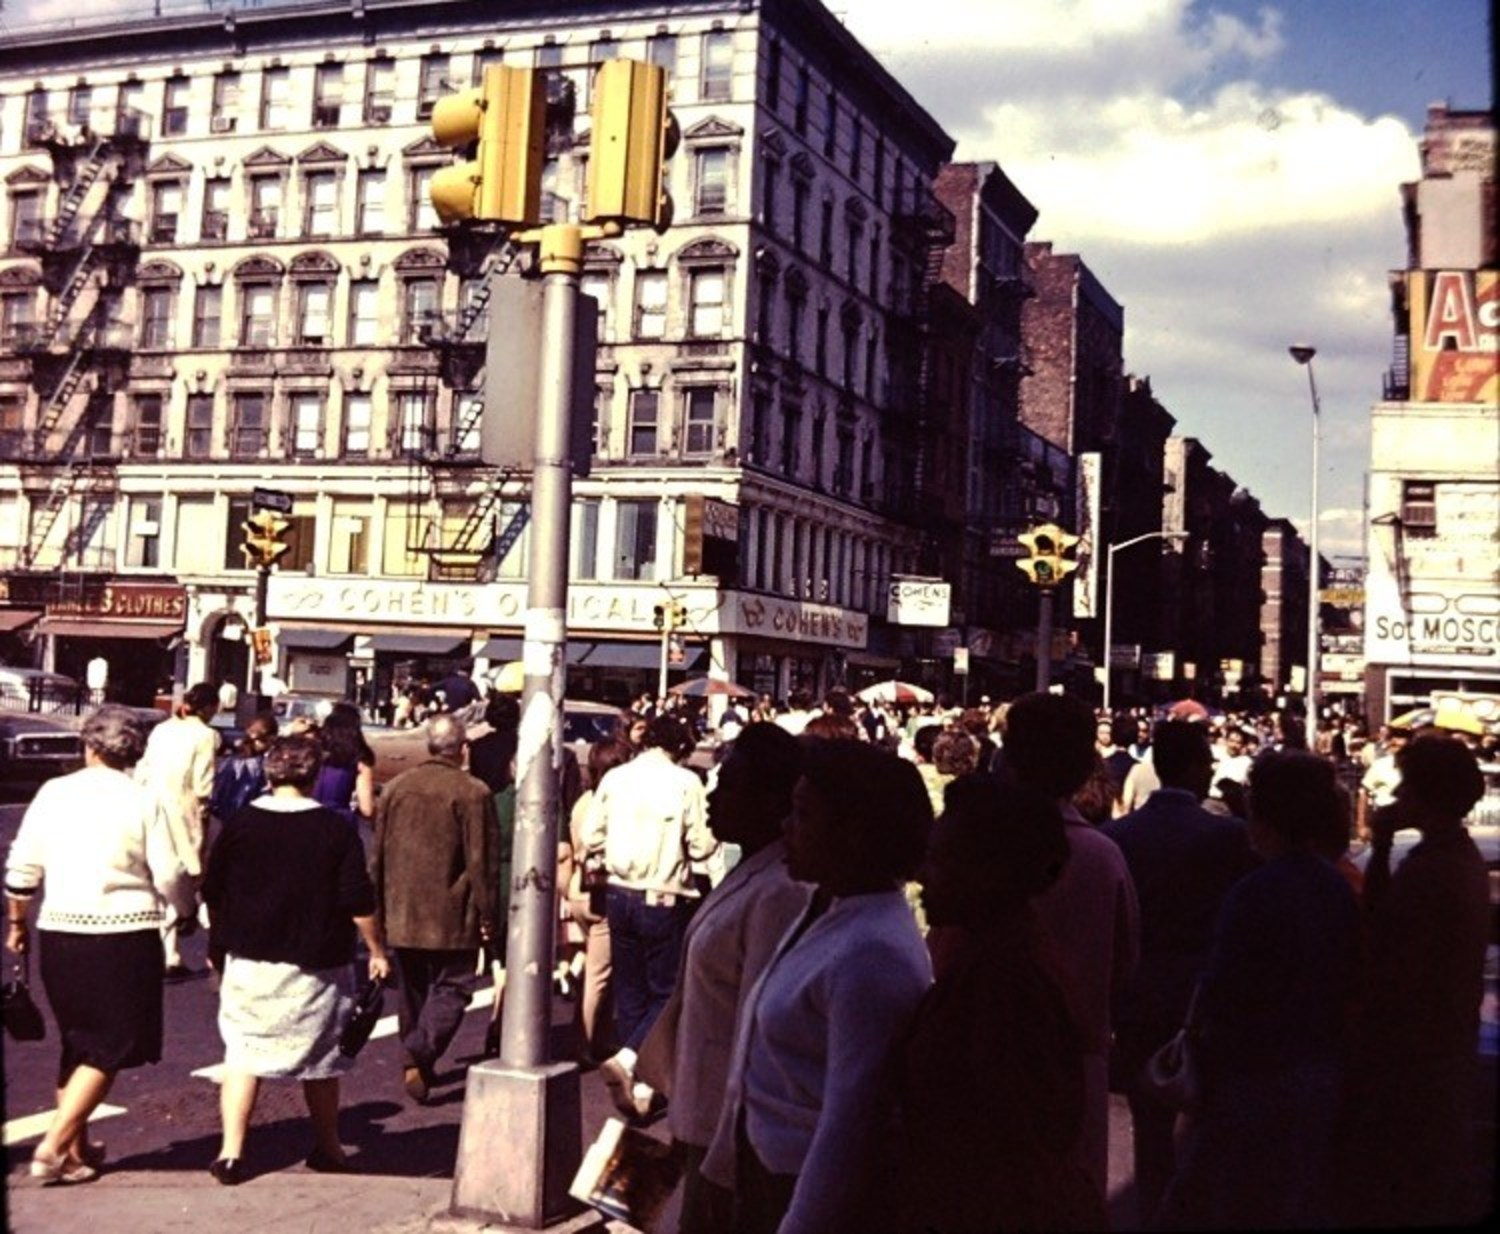 Delancey Street at Orchard Street, 1969.